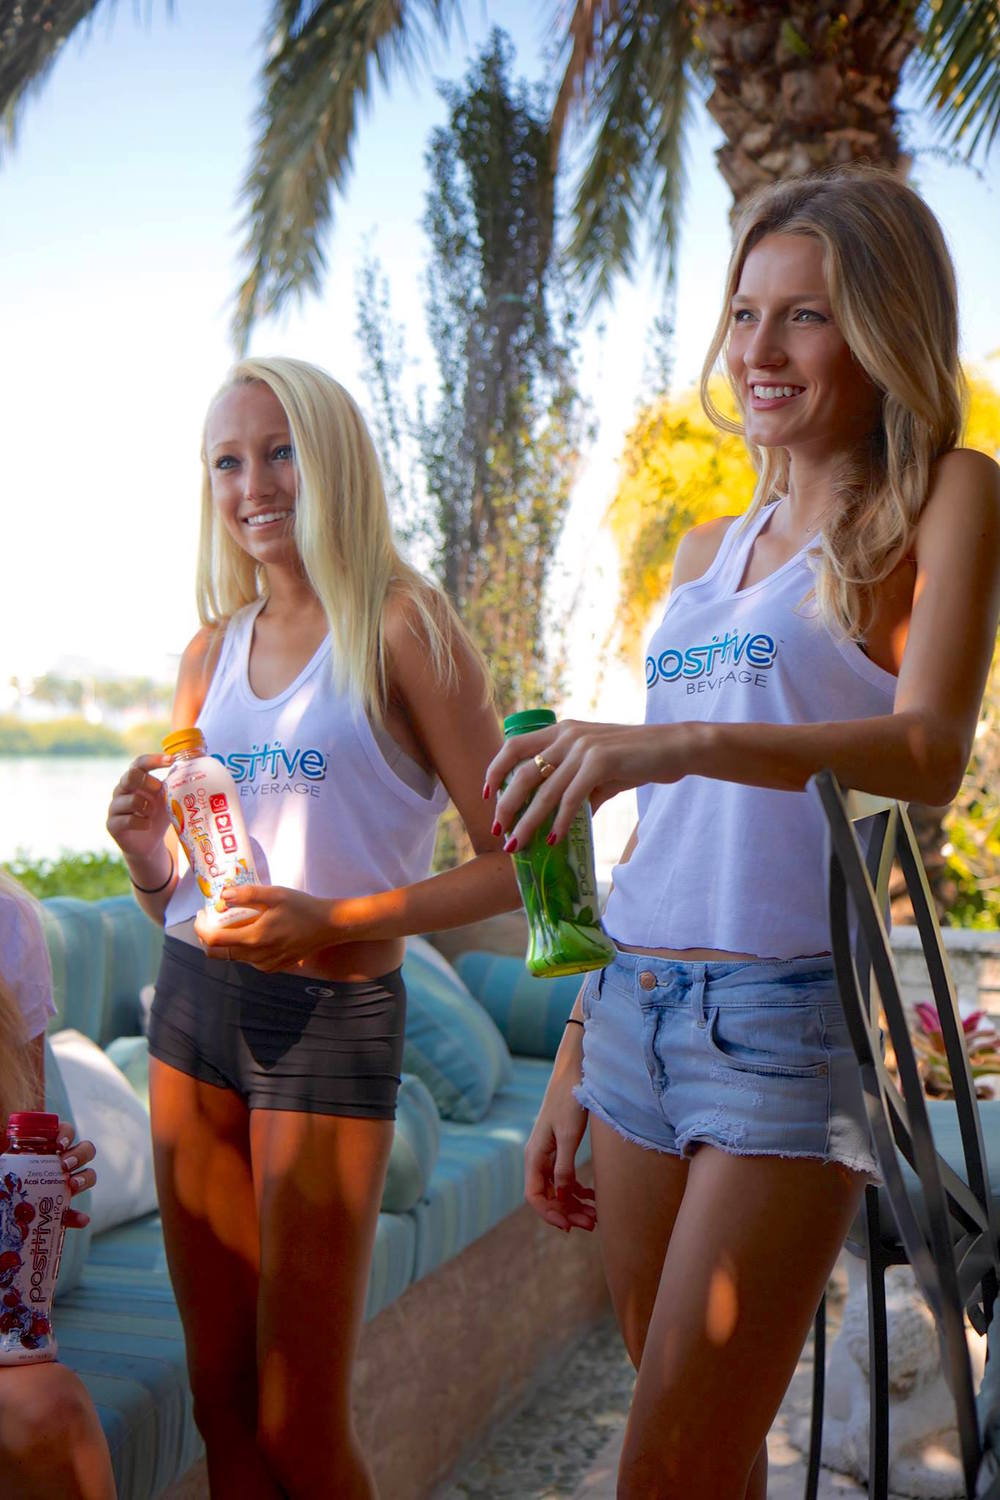 positive-beverage-energy-girls